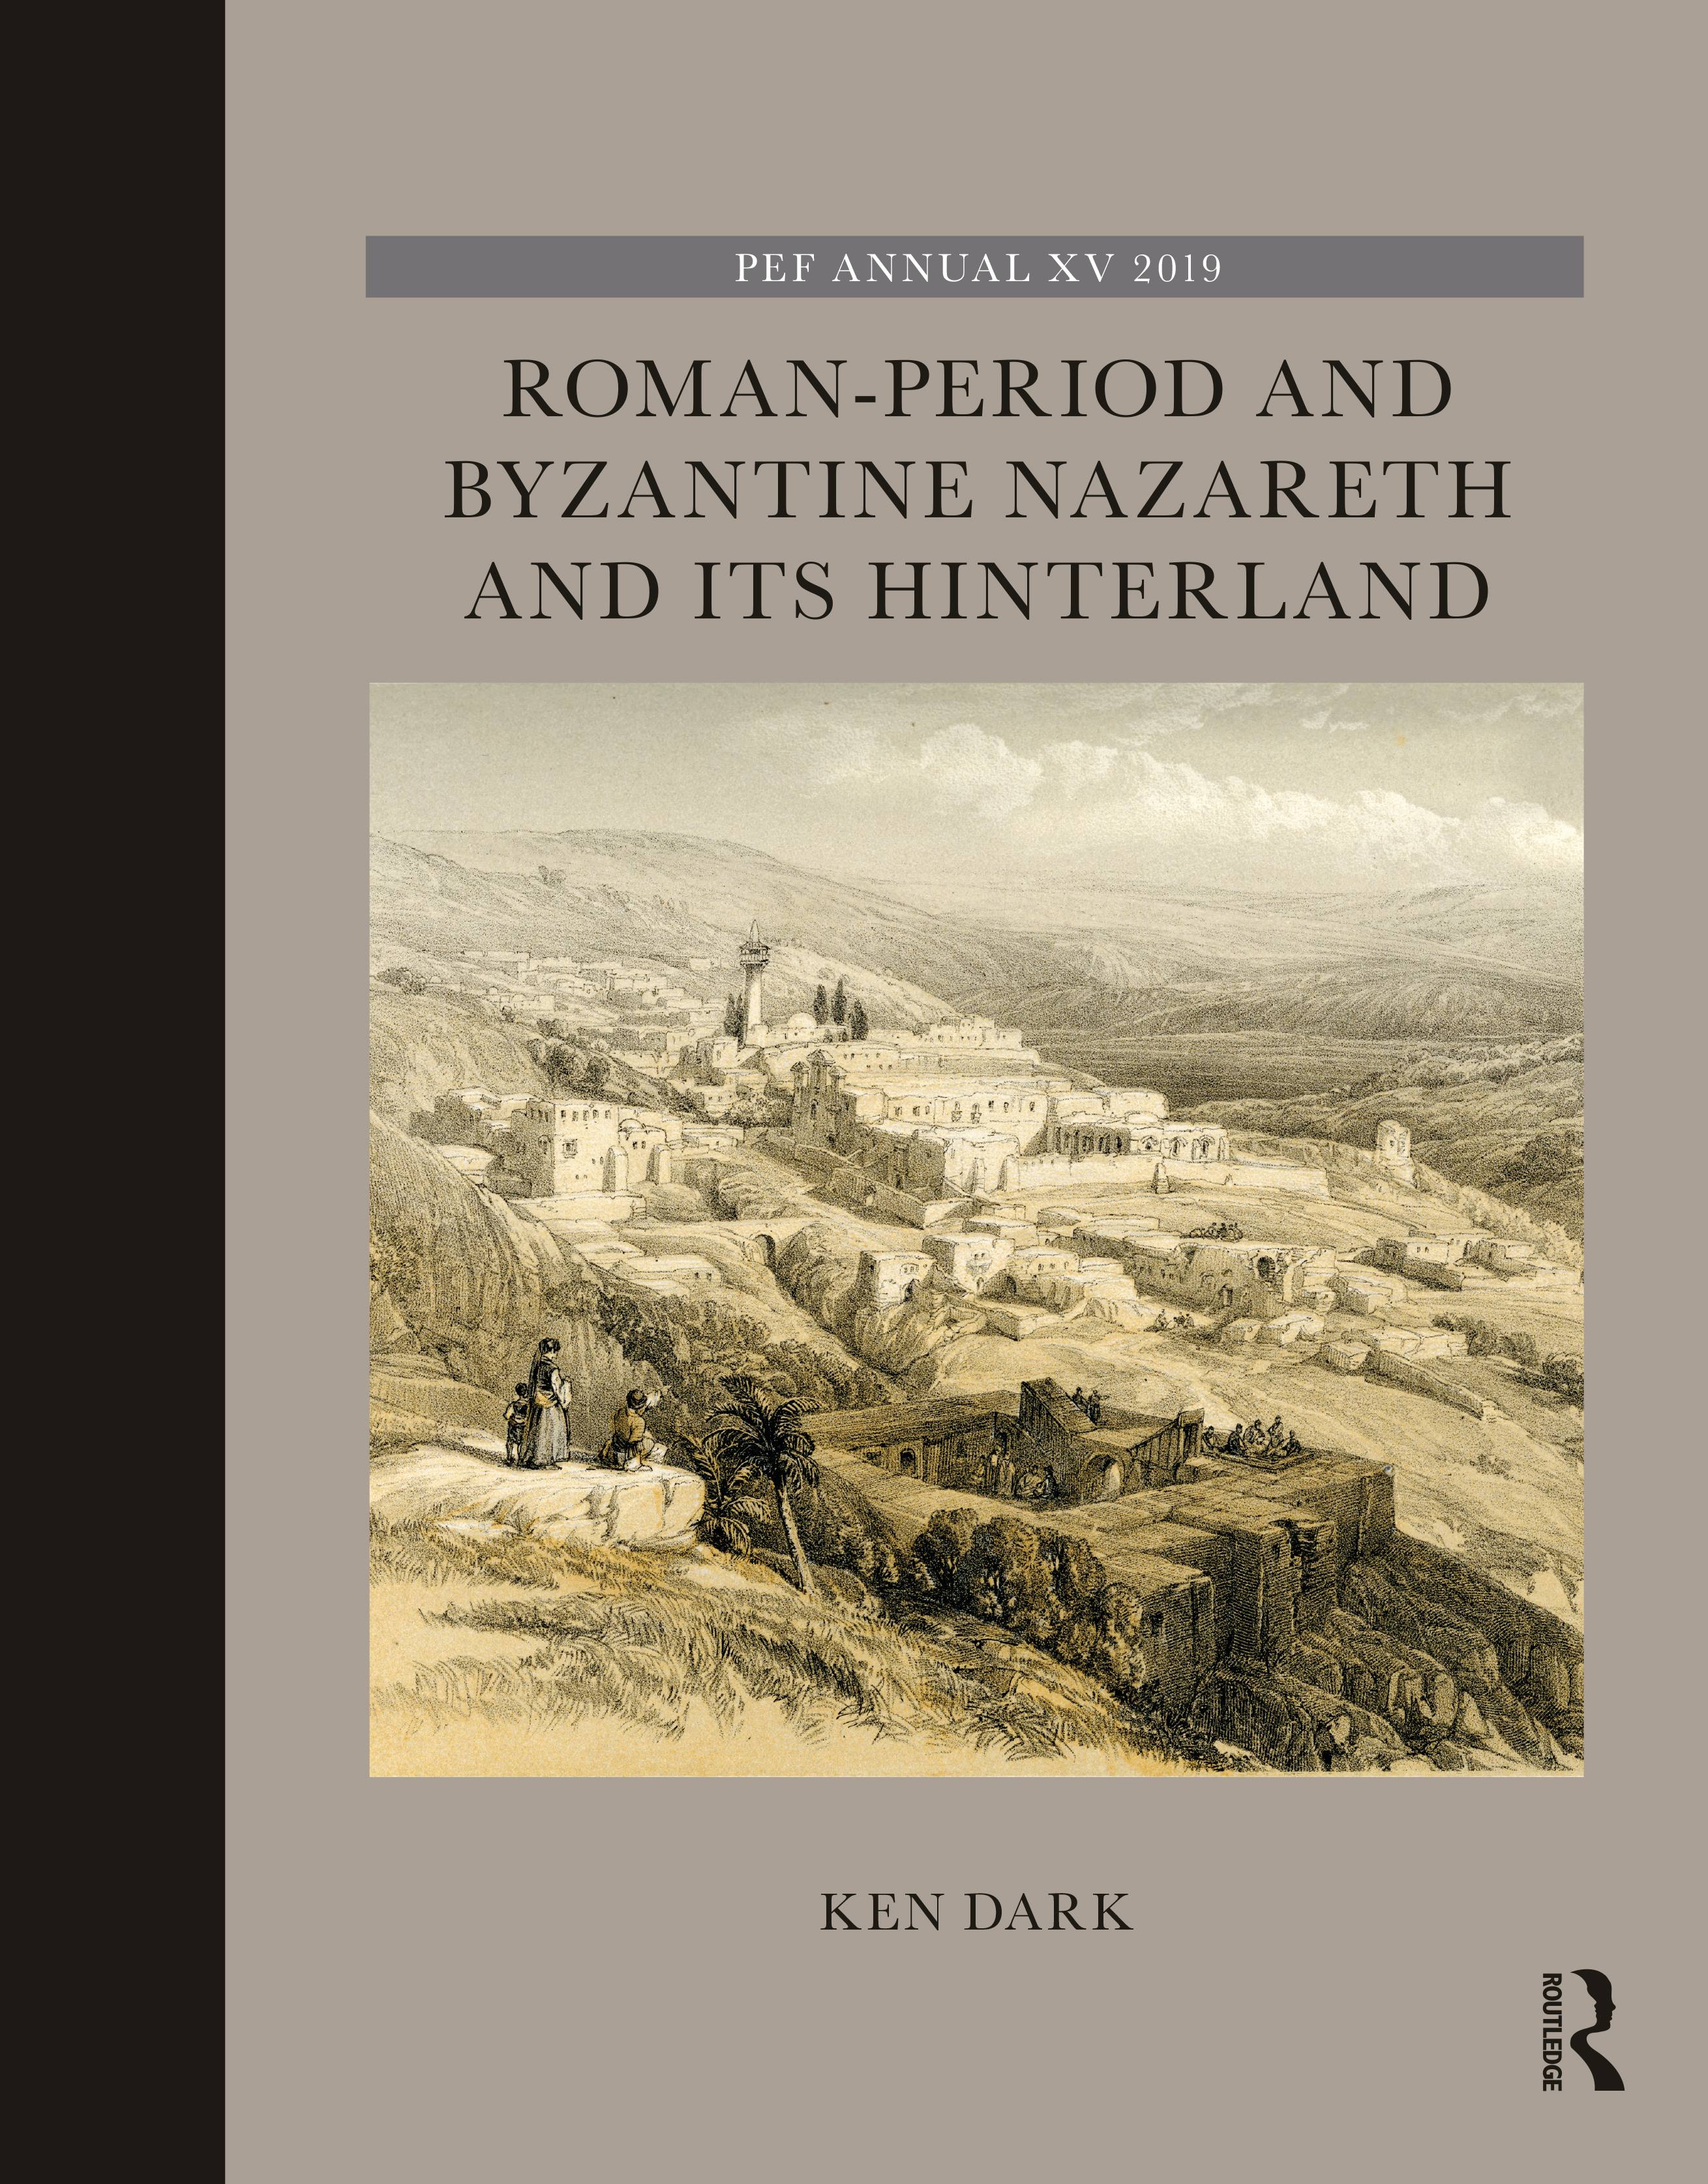 Roman-Period and Byzantine Nazareth and its Hinterland book cover